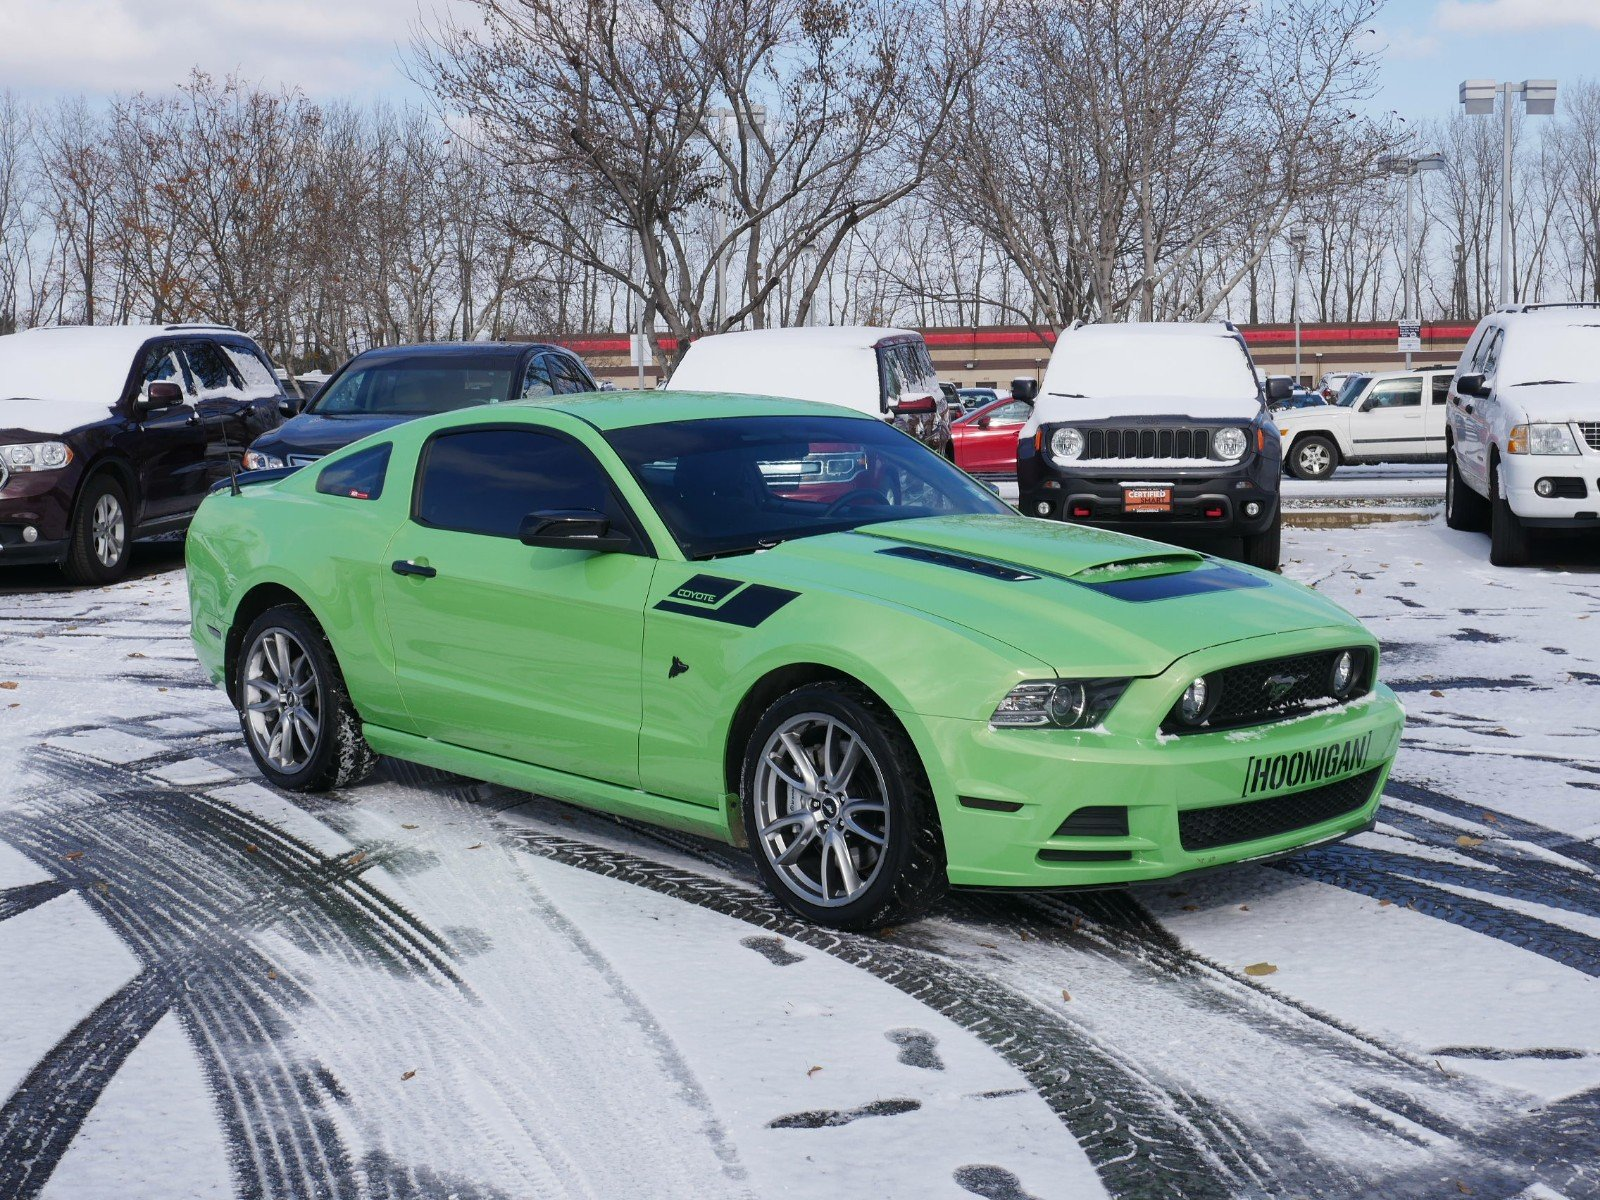 Pre Owned 2014 Ford Mustang GT 2dr Car in Burnsville N B